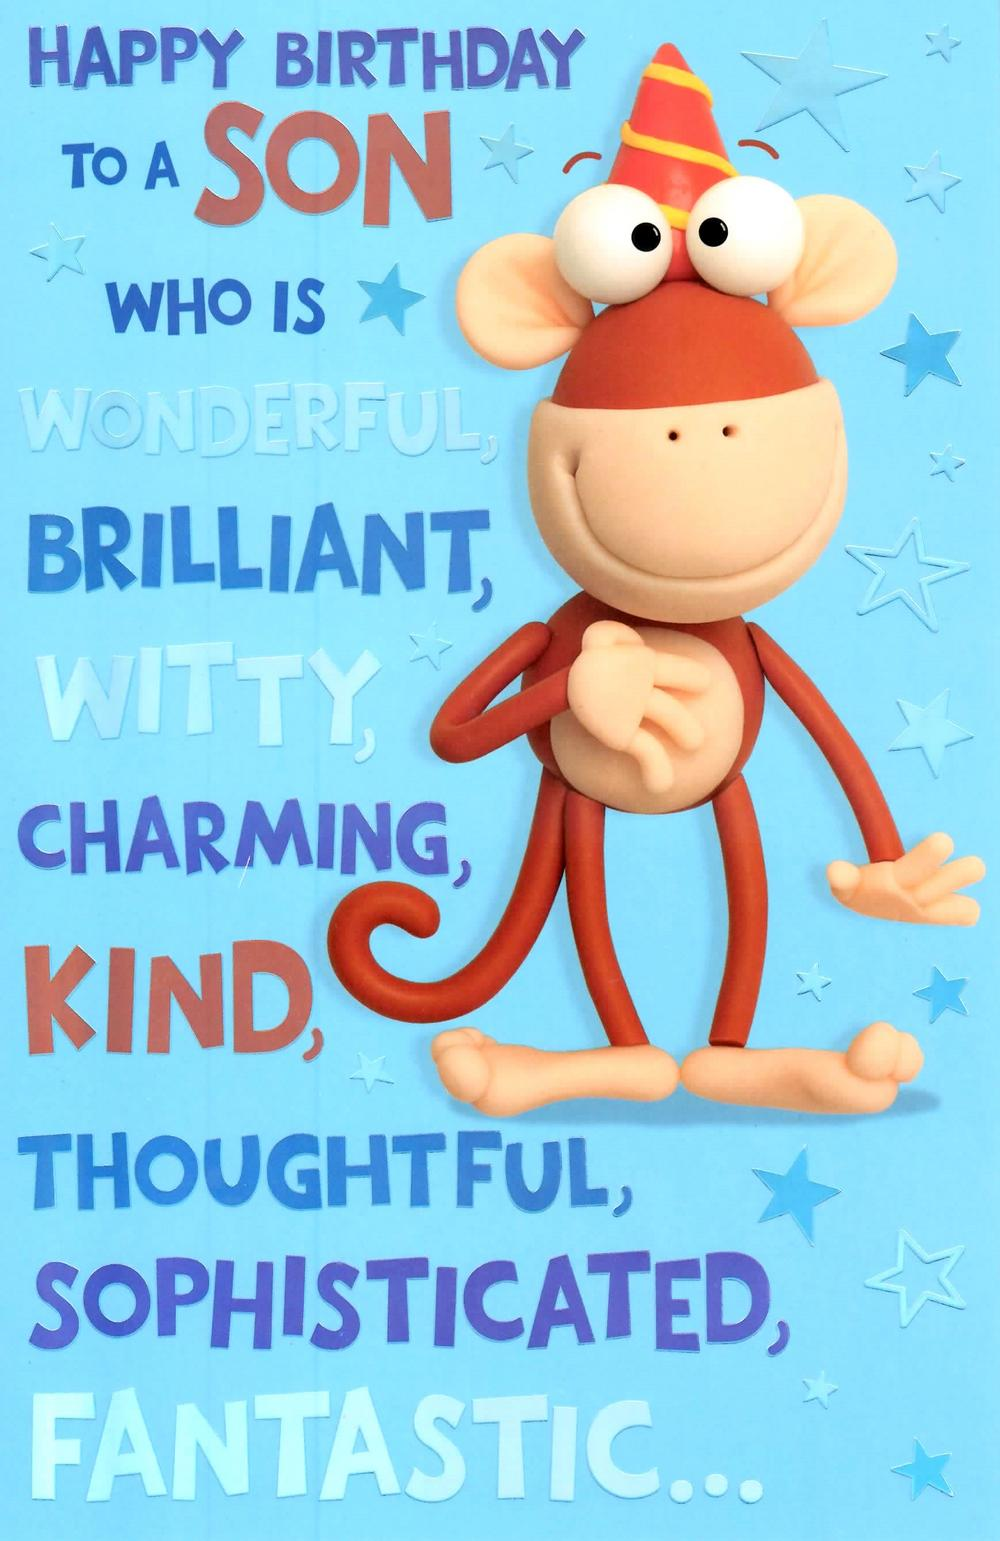 Son Funny Birthday Quotes: Nice Quotes For Son Happy Birthday. QuotesGram